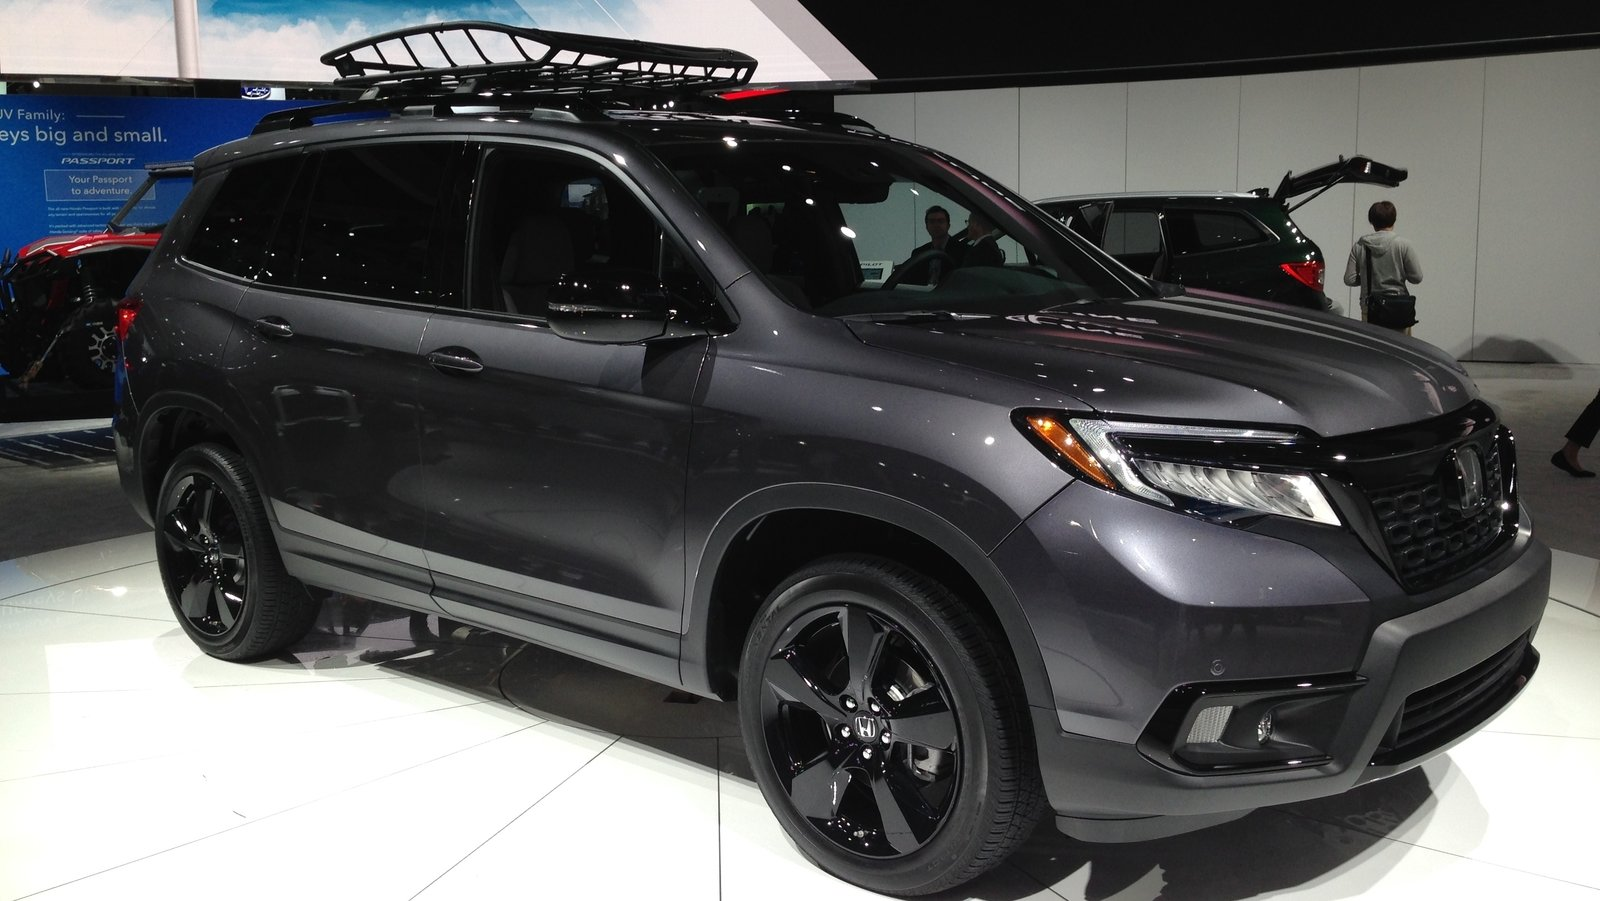 If You Think The New Honda Passport Looks Good, Wait Until You See It In Person | Top Speed